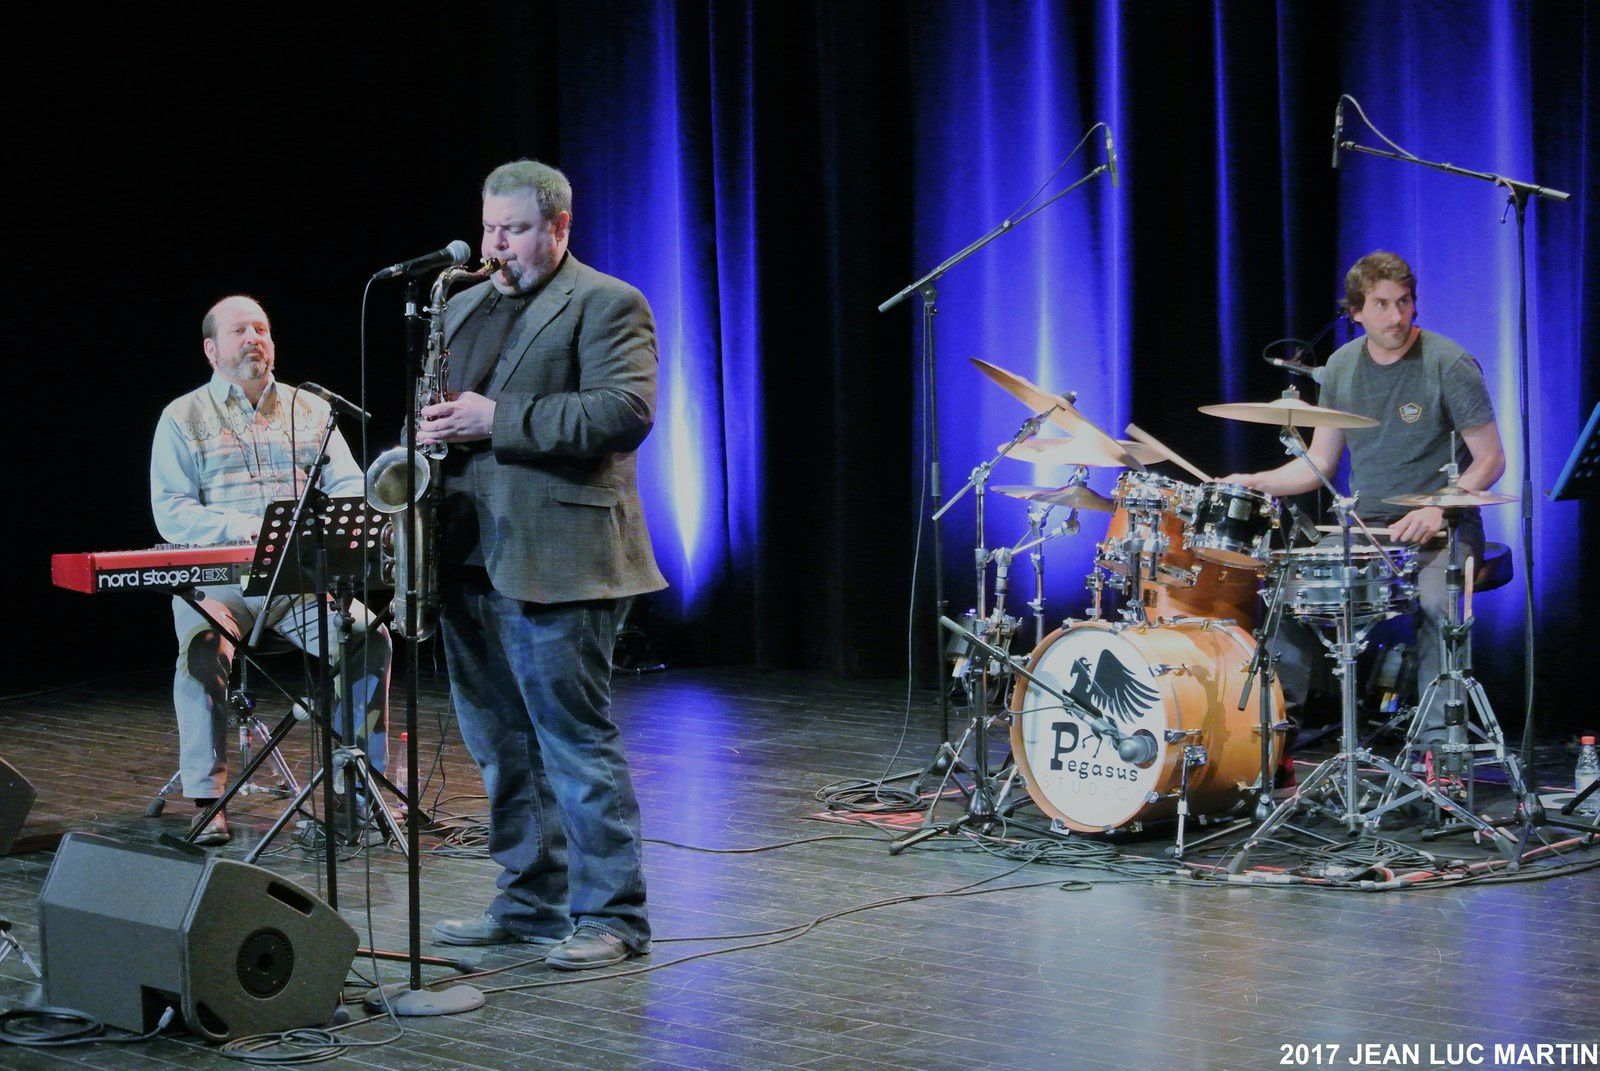 FRANK CATALANO AND HIS FRENCH GUYS A ST GEORGES DE DIDONNE LE 29/04/2017